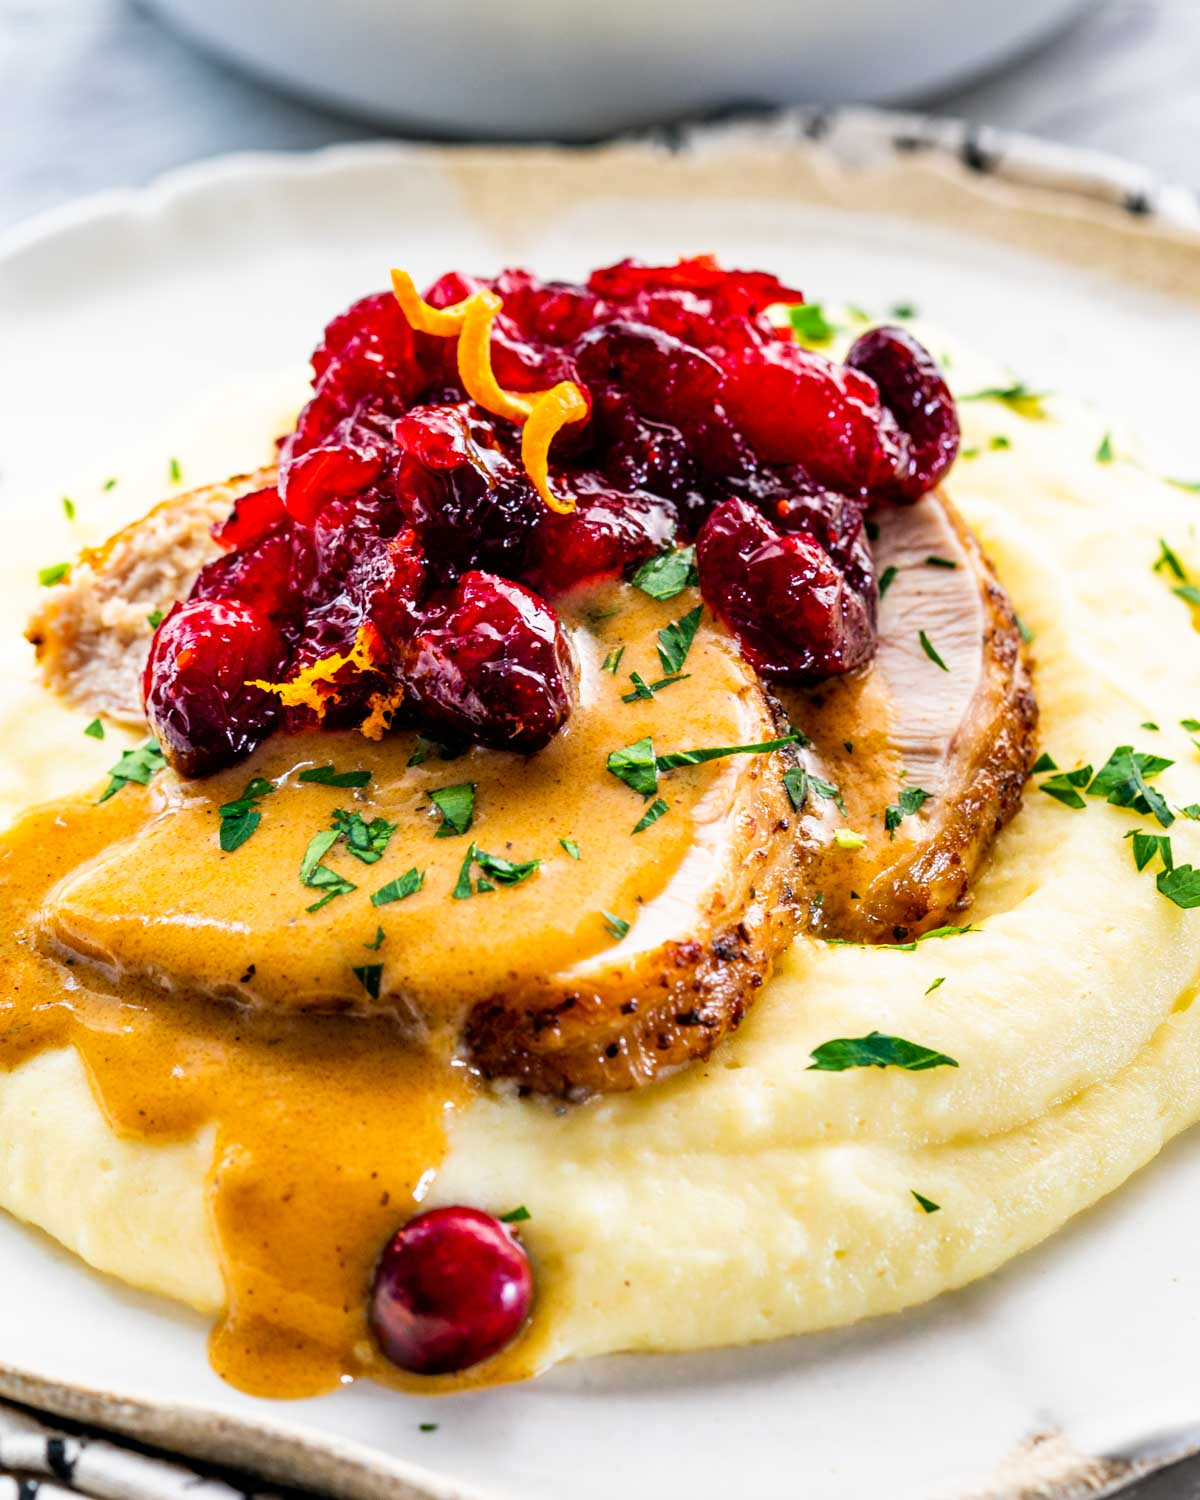 mashed potatoes with 2 slices of turkey breast. gravy and cranberry sauce.